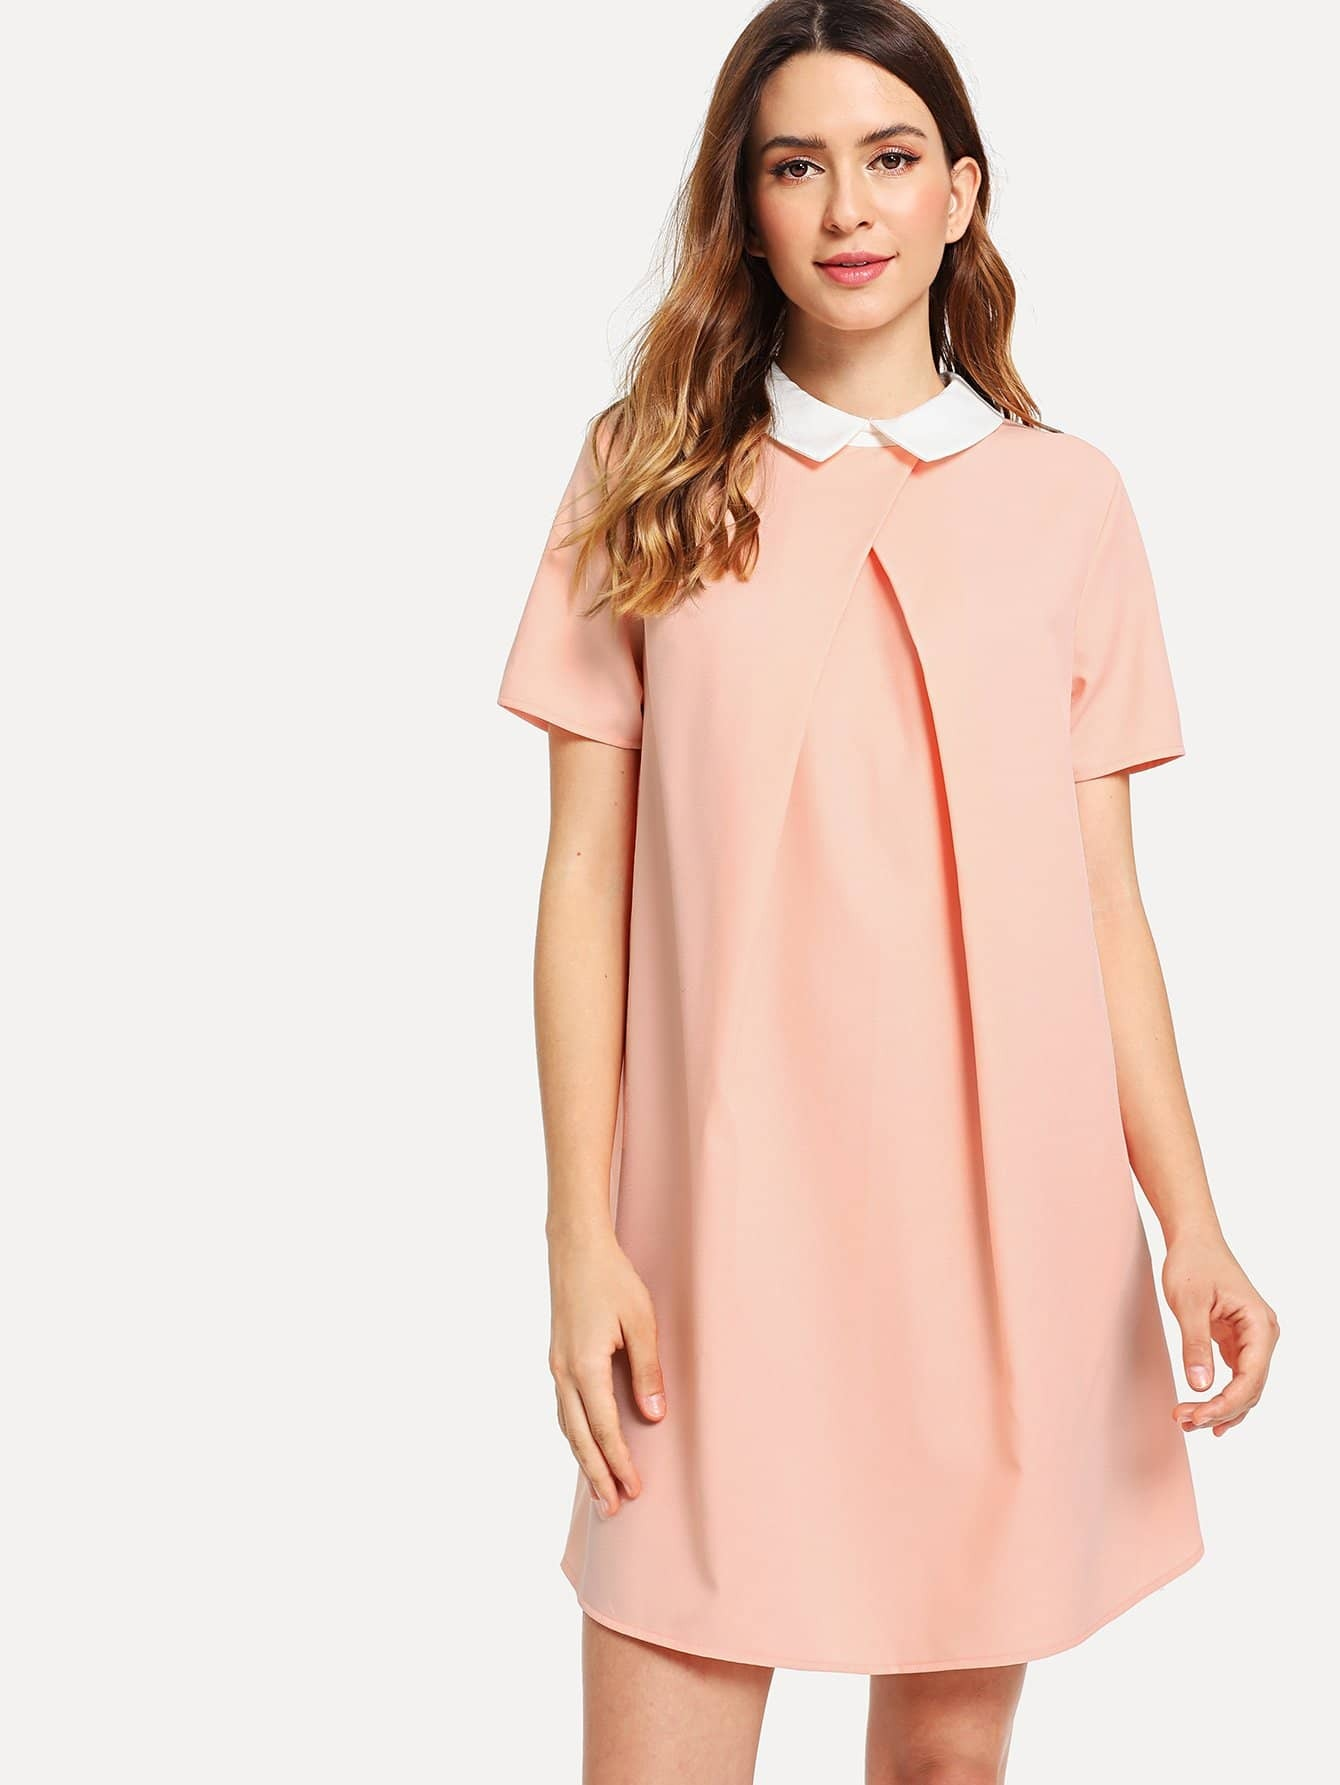 Contrast Collar Foldover Front Dress contrast collar foldover front dress